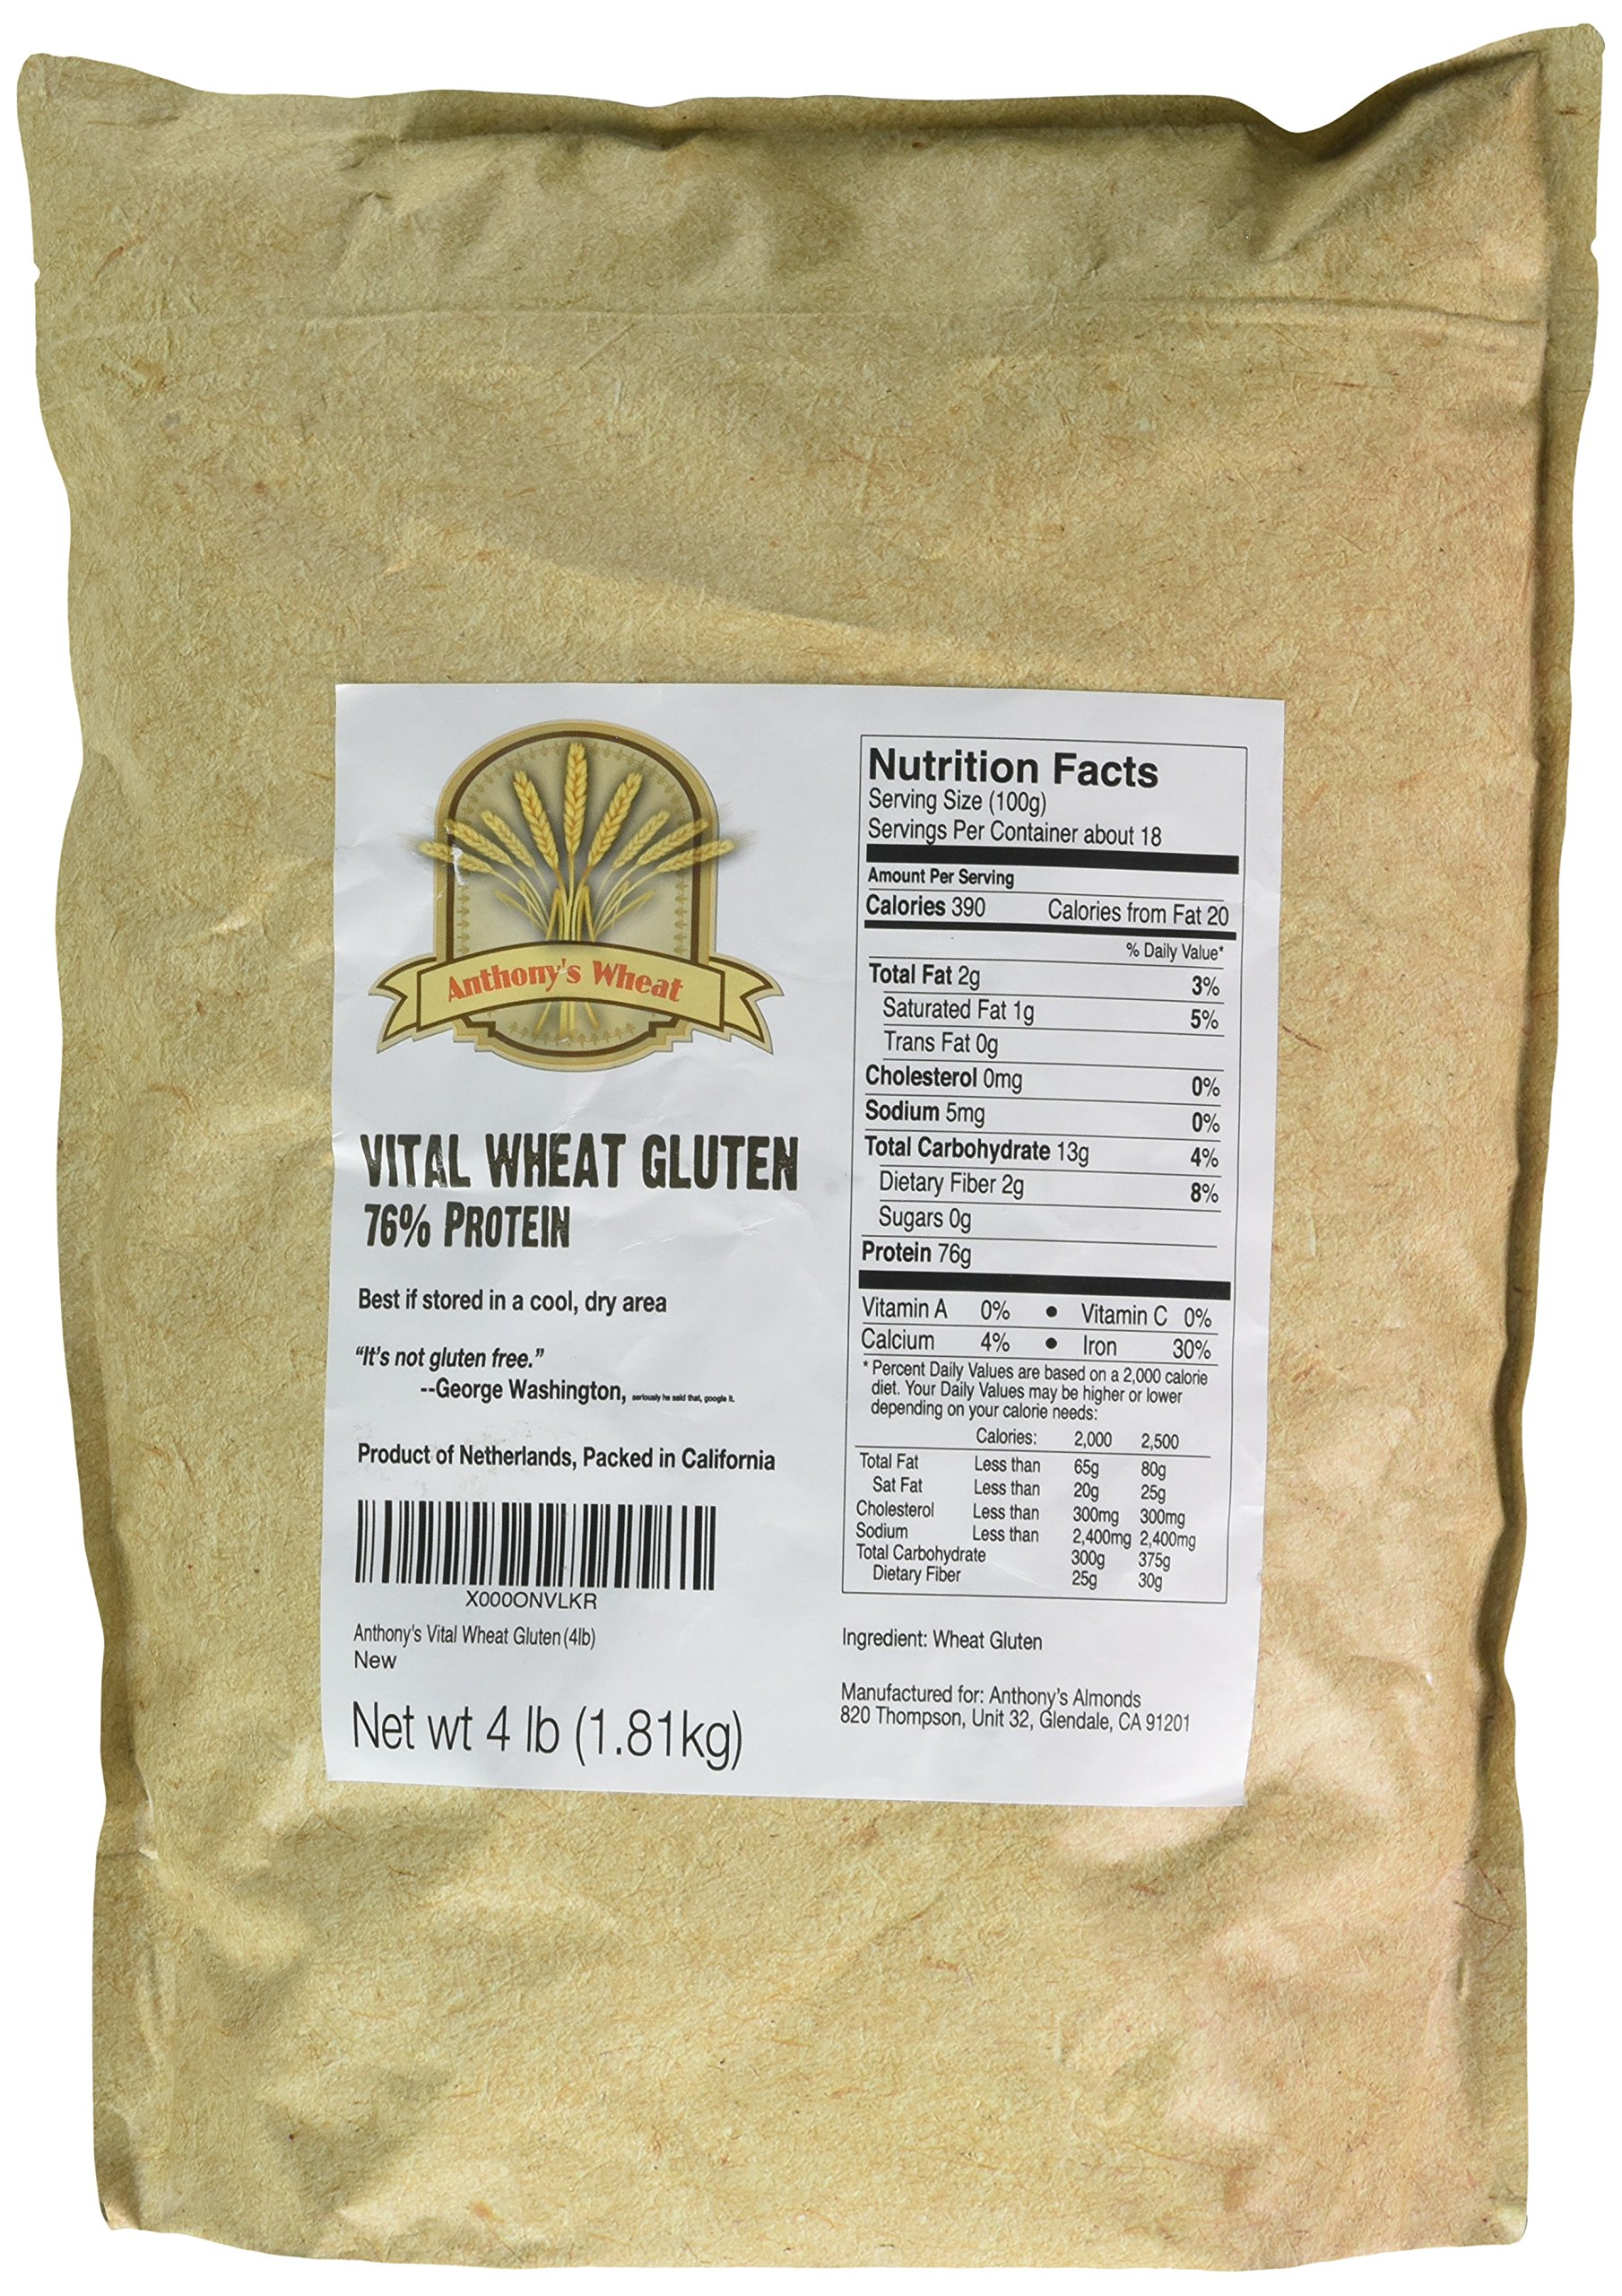 Buy Vital Wheat Gluten by Anthonys (4 Pounds), 77% Protein